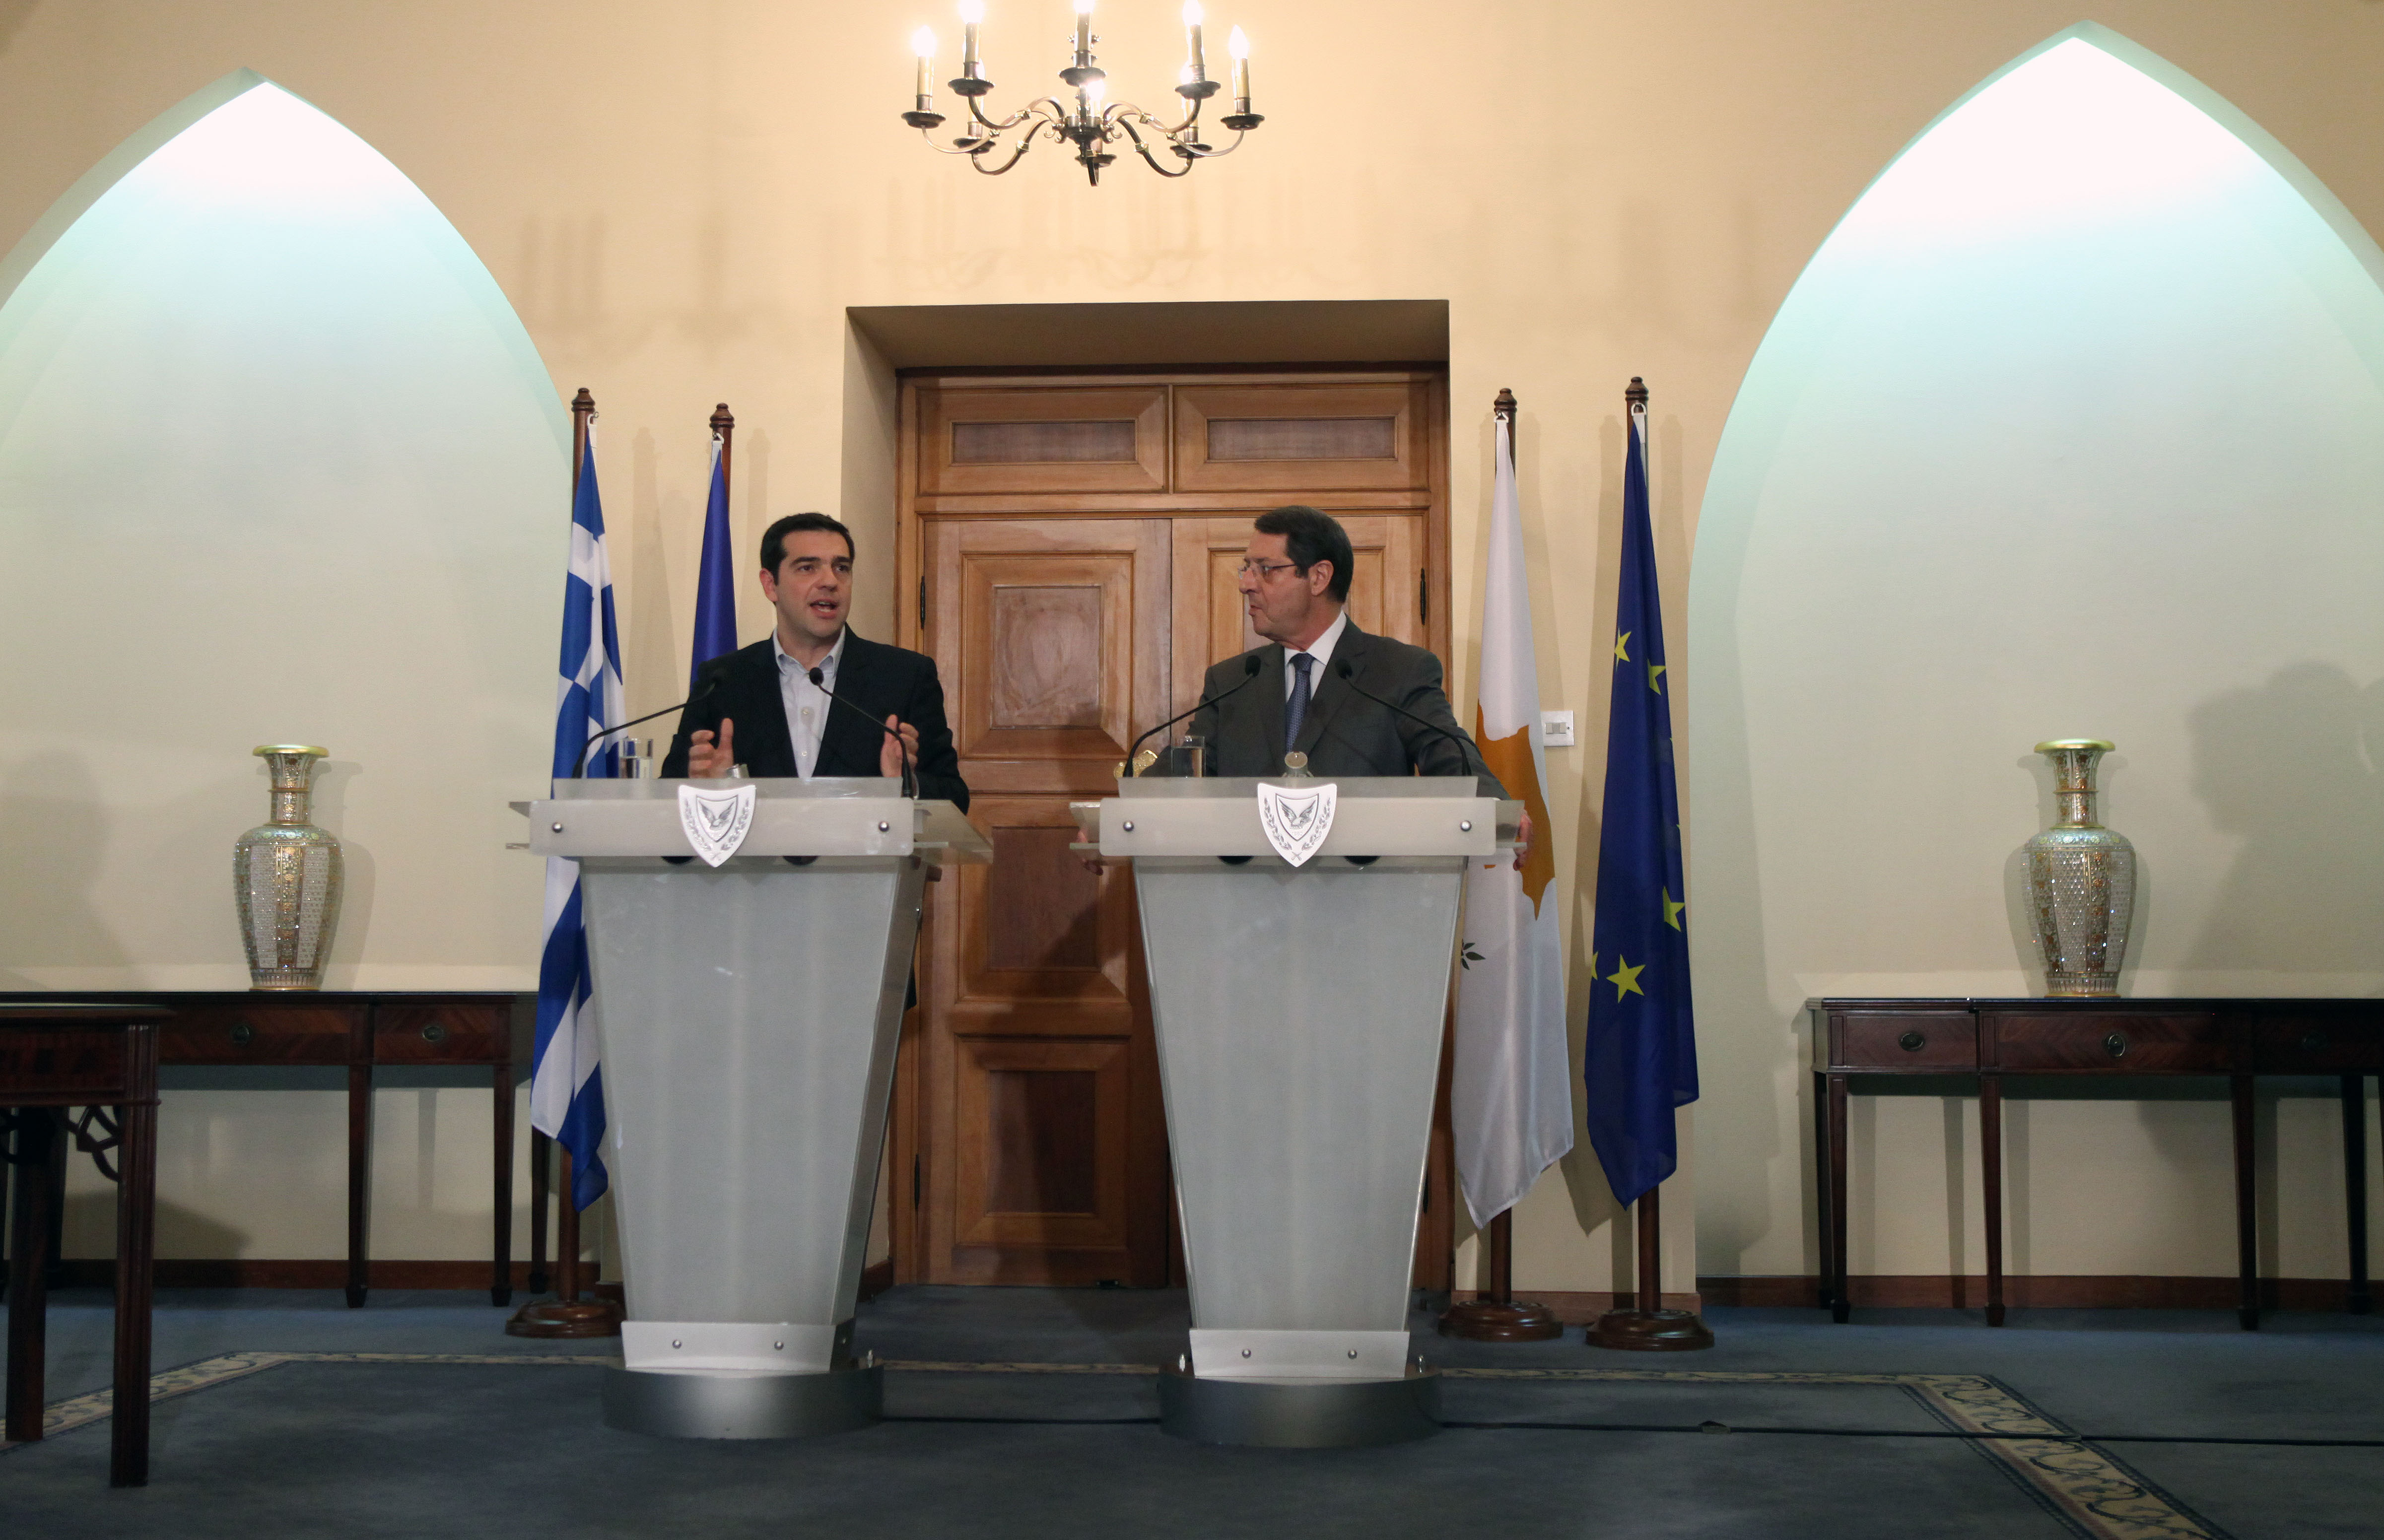 Assessment of the visit of the Greek PM in Cyprus